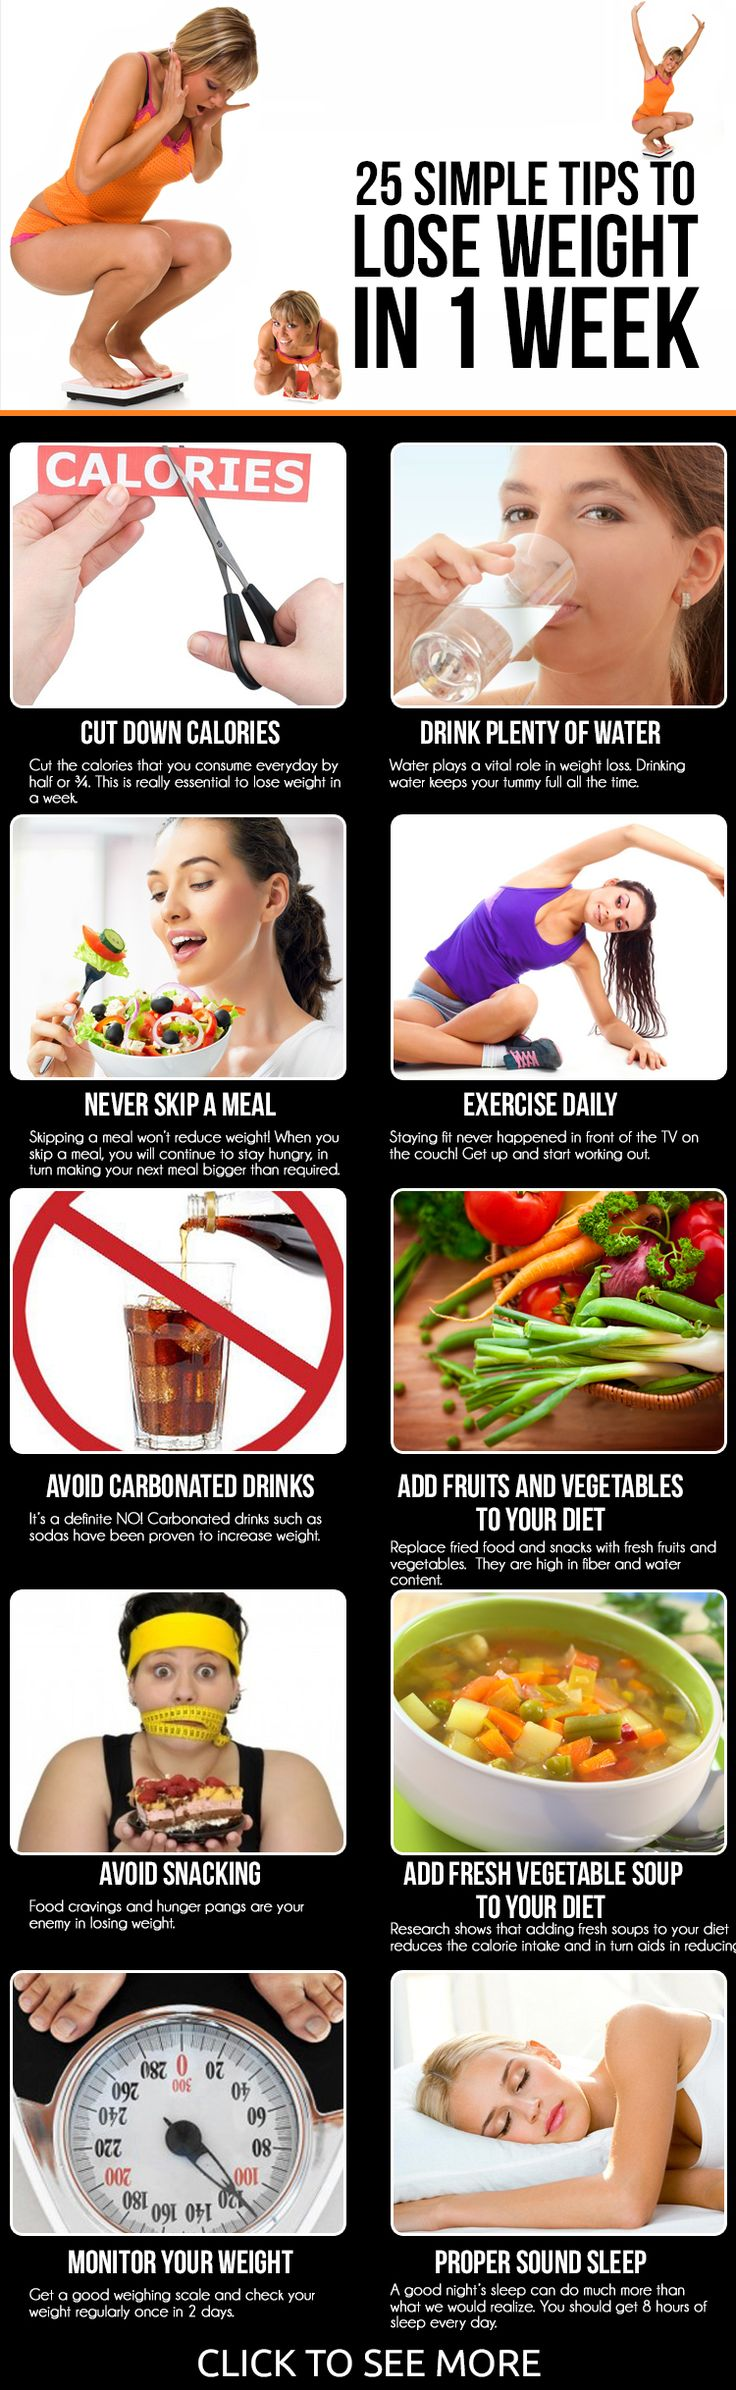 Weight Loss : Here are 25 simple pointers on a weekly diet plan to lose weight: ... #WeightLoss #LosingWeightTips